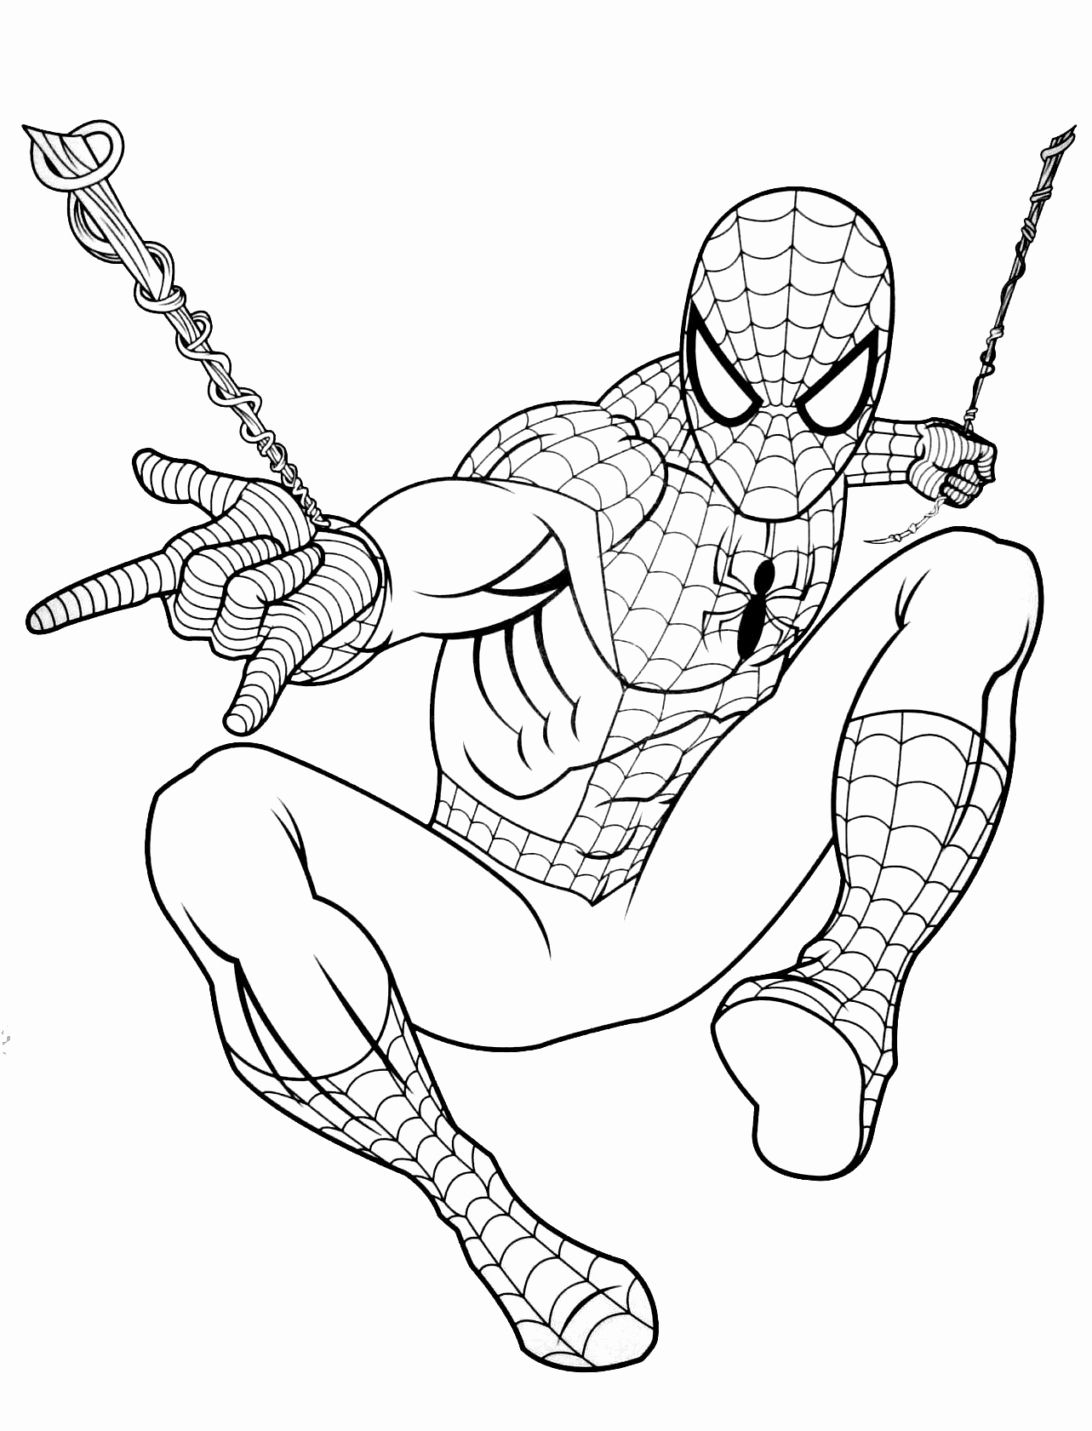 Pin On Spiderman Coloring Pages For Kids